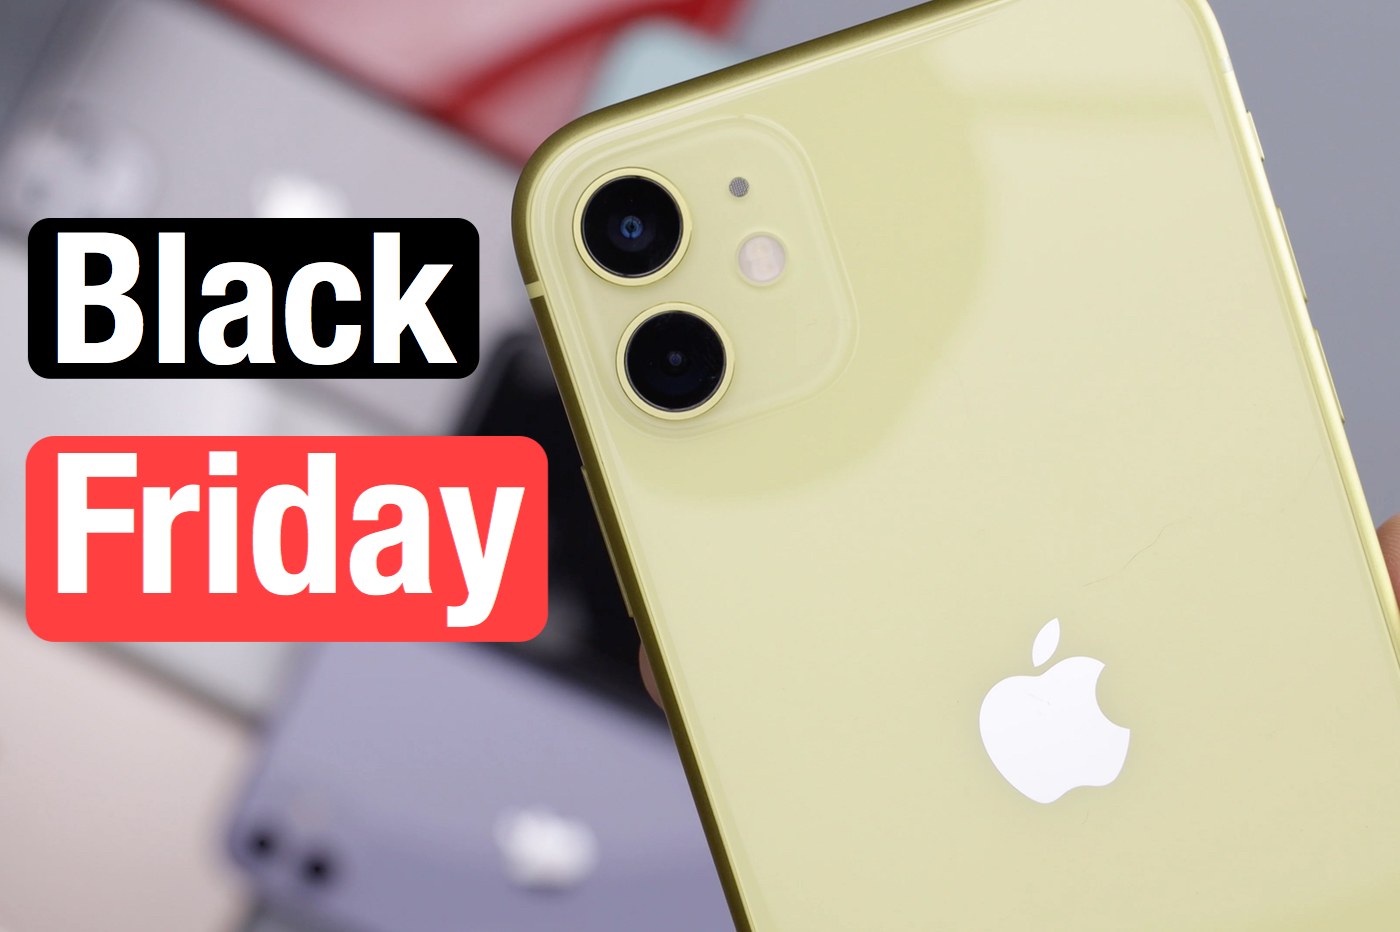 Black Friday iPhone